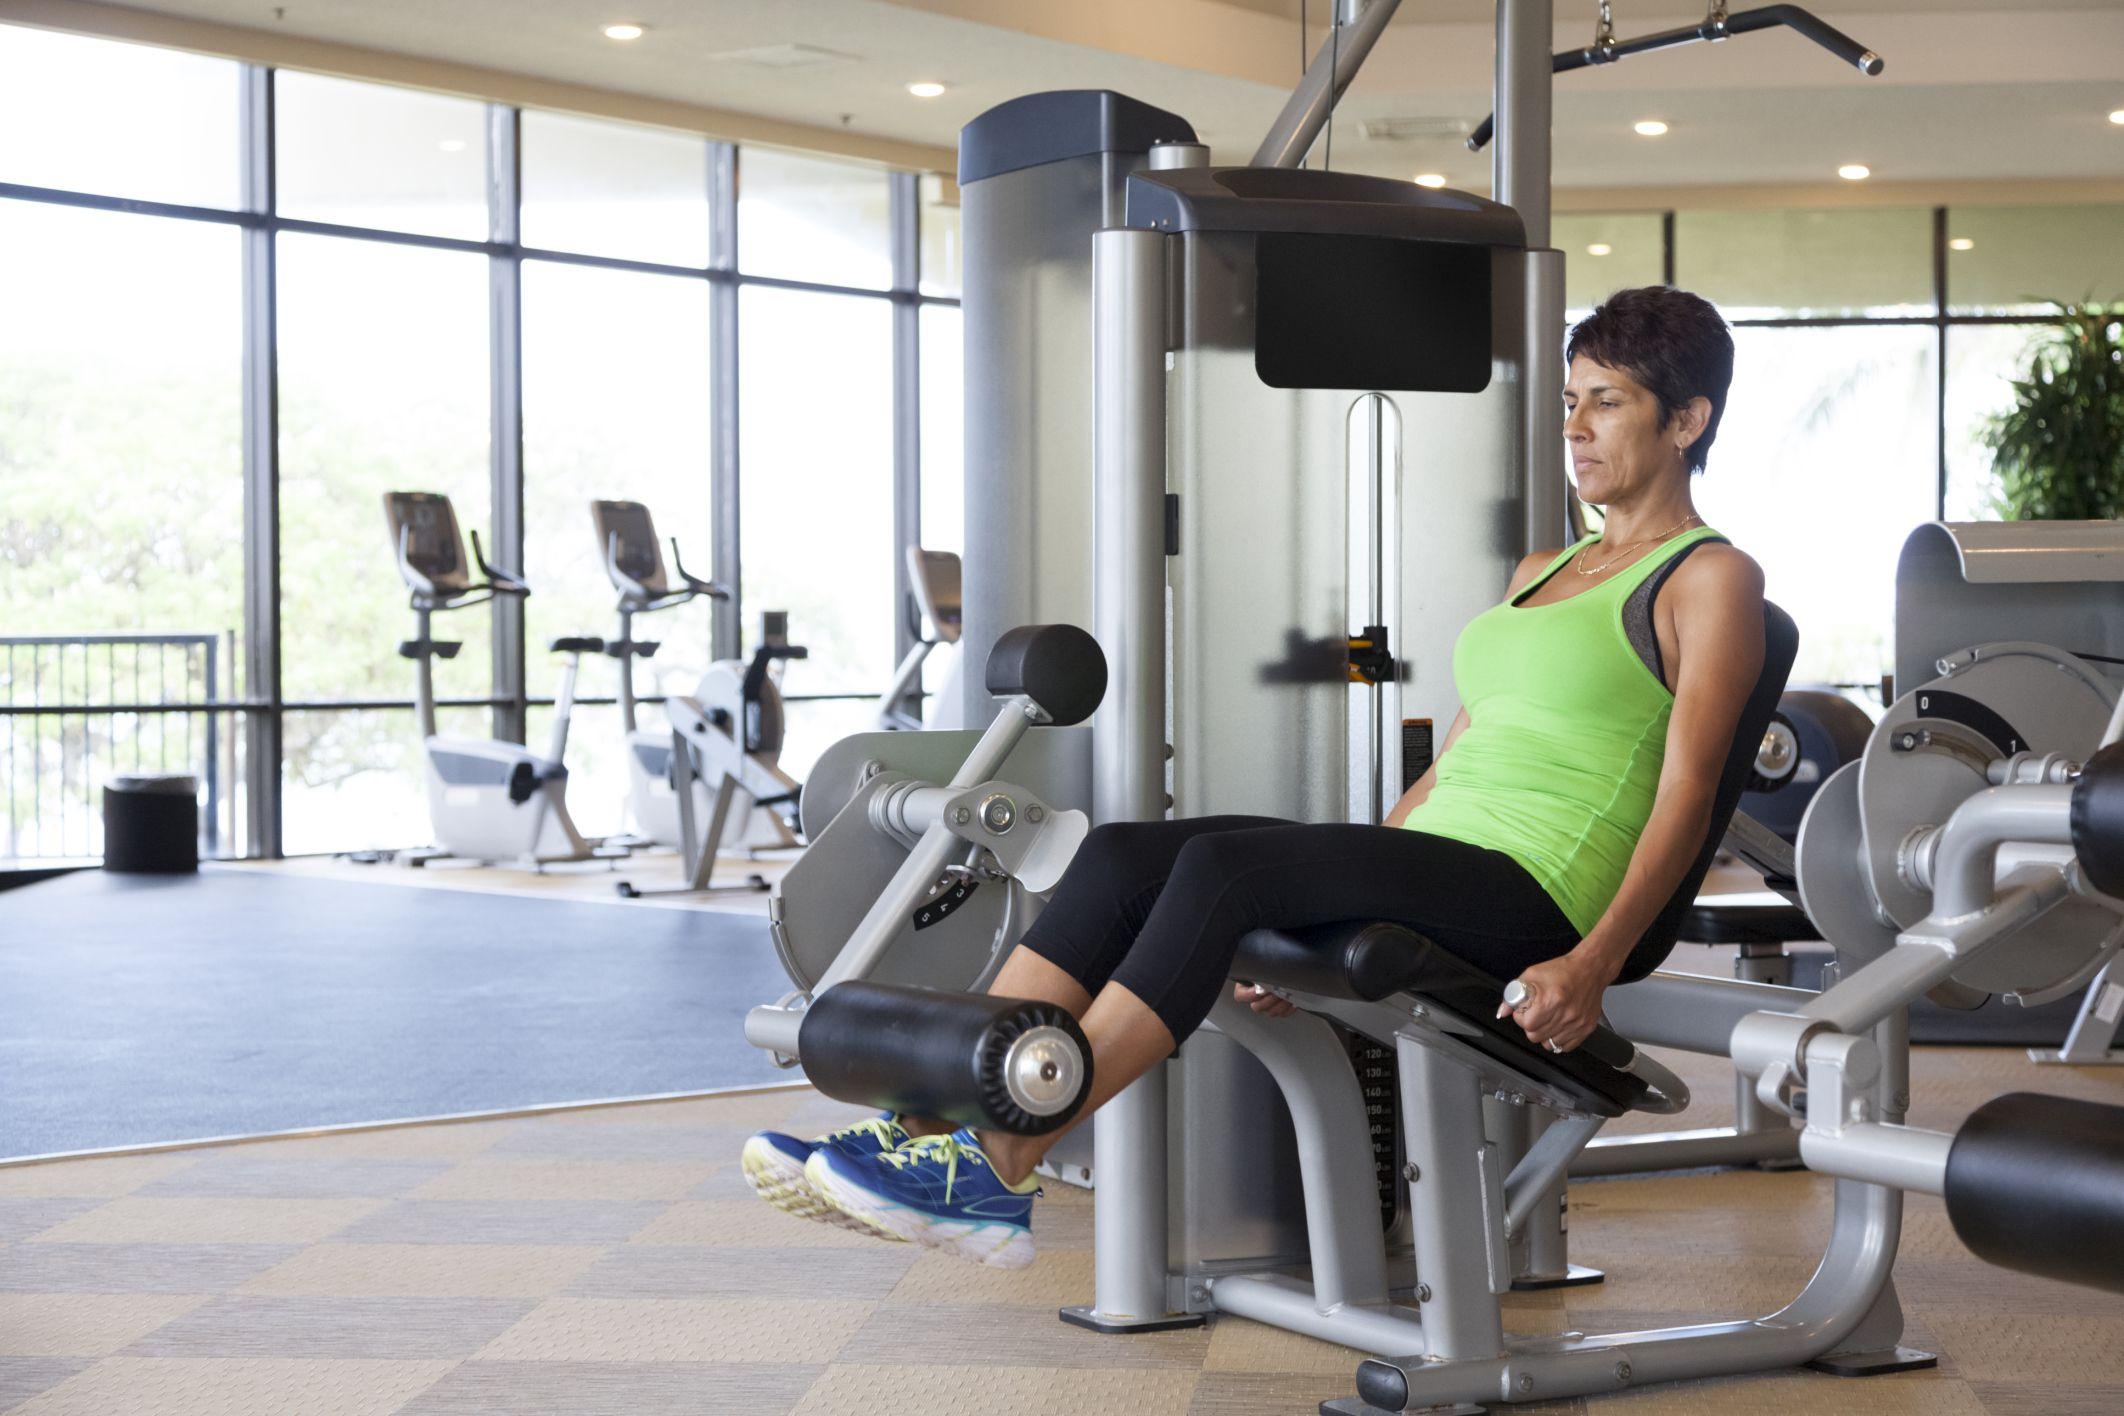 Quad Strengthening Exercises And Your Back